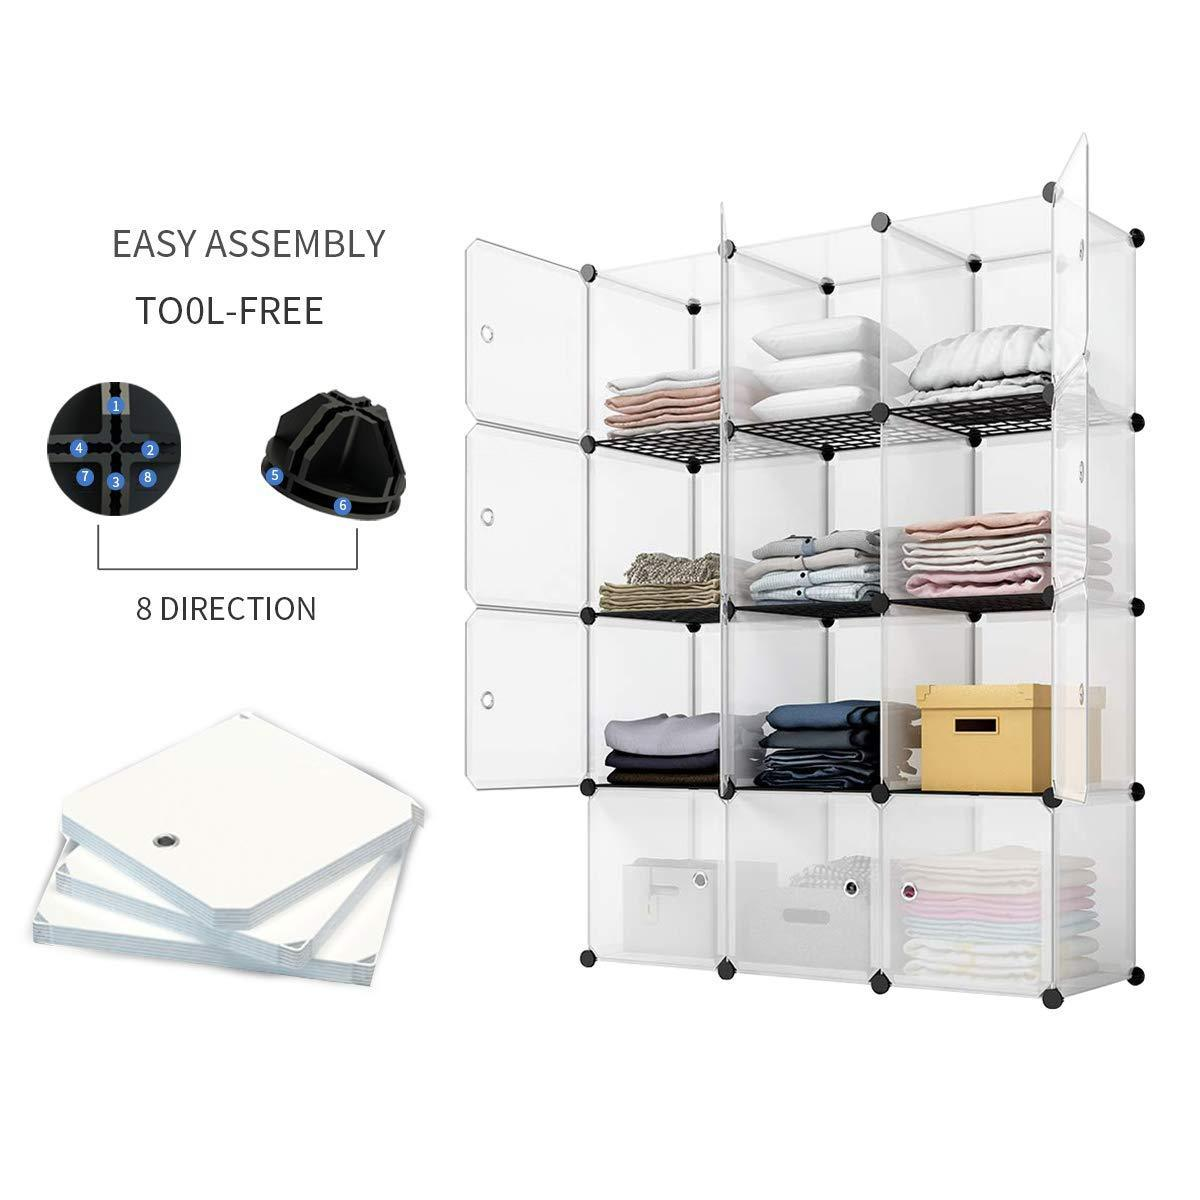 New kousi portable storage cube cube organizer cube storage shelves cube shelf room organizer clothes storage cubby shelving bookshelf toy organizer cabinet transparent white 12 cubes